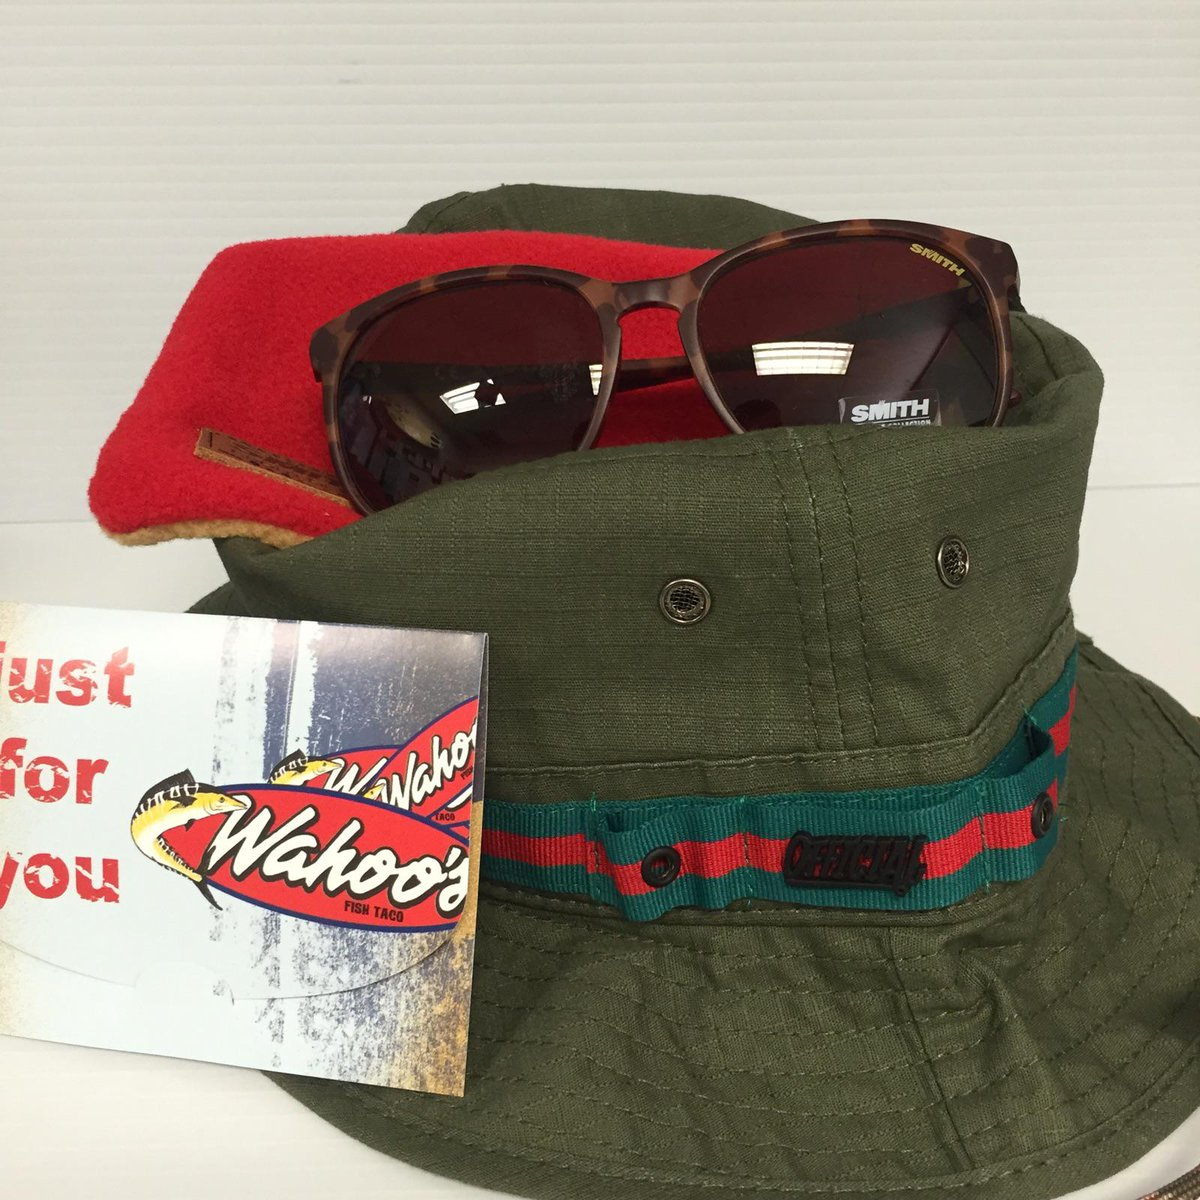 #WahoosWednesday! Follow/retweet and this Offical Bucket Hat, Smith Sunglasses, and gift card could be yours! http://t.co/s2s1lAf8Qg